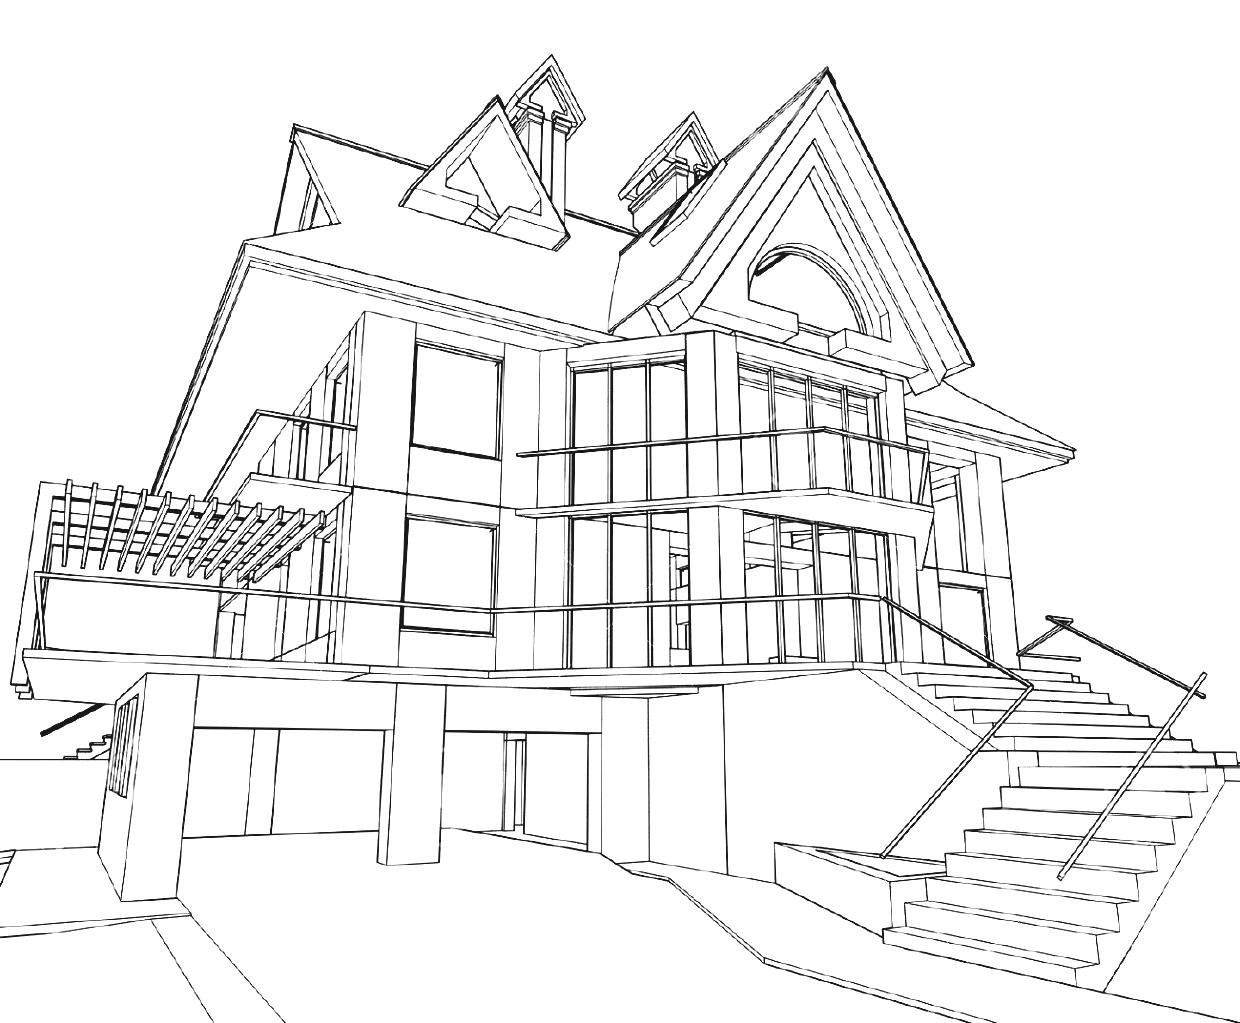 Architecture house drawing at free for for How to get building plans for your house